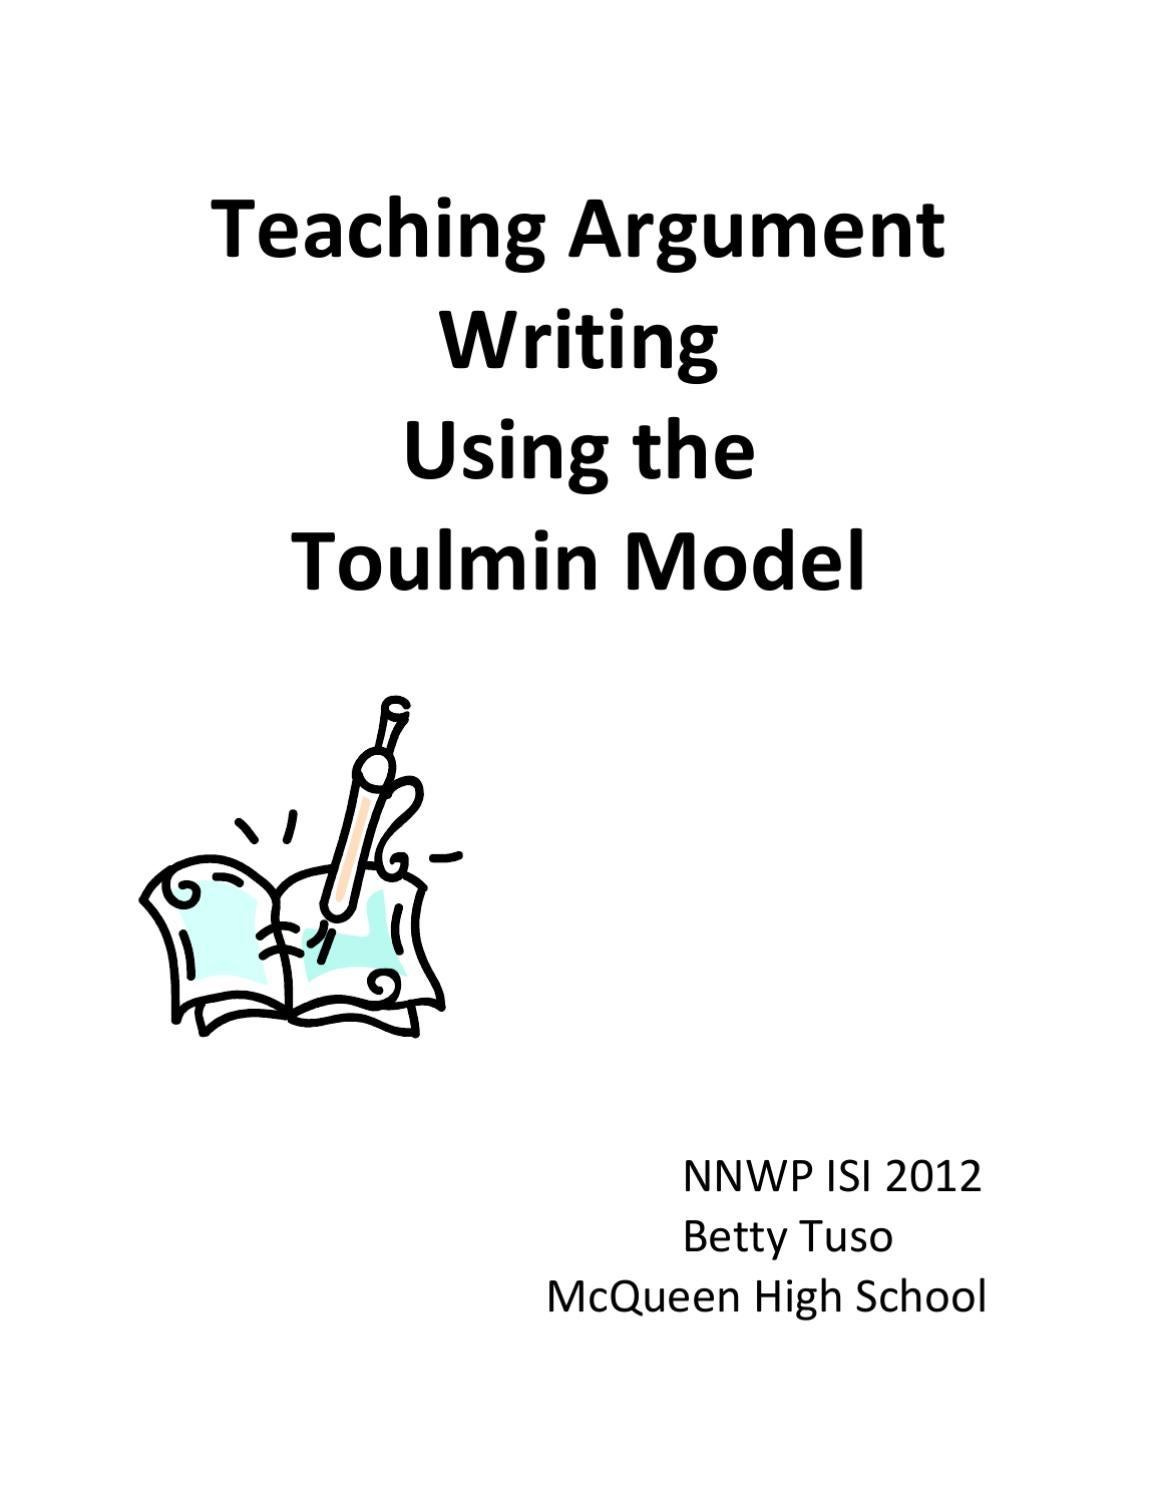 Teaching Argument Writing Using the Toulmin Model by Betty